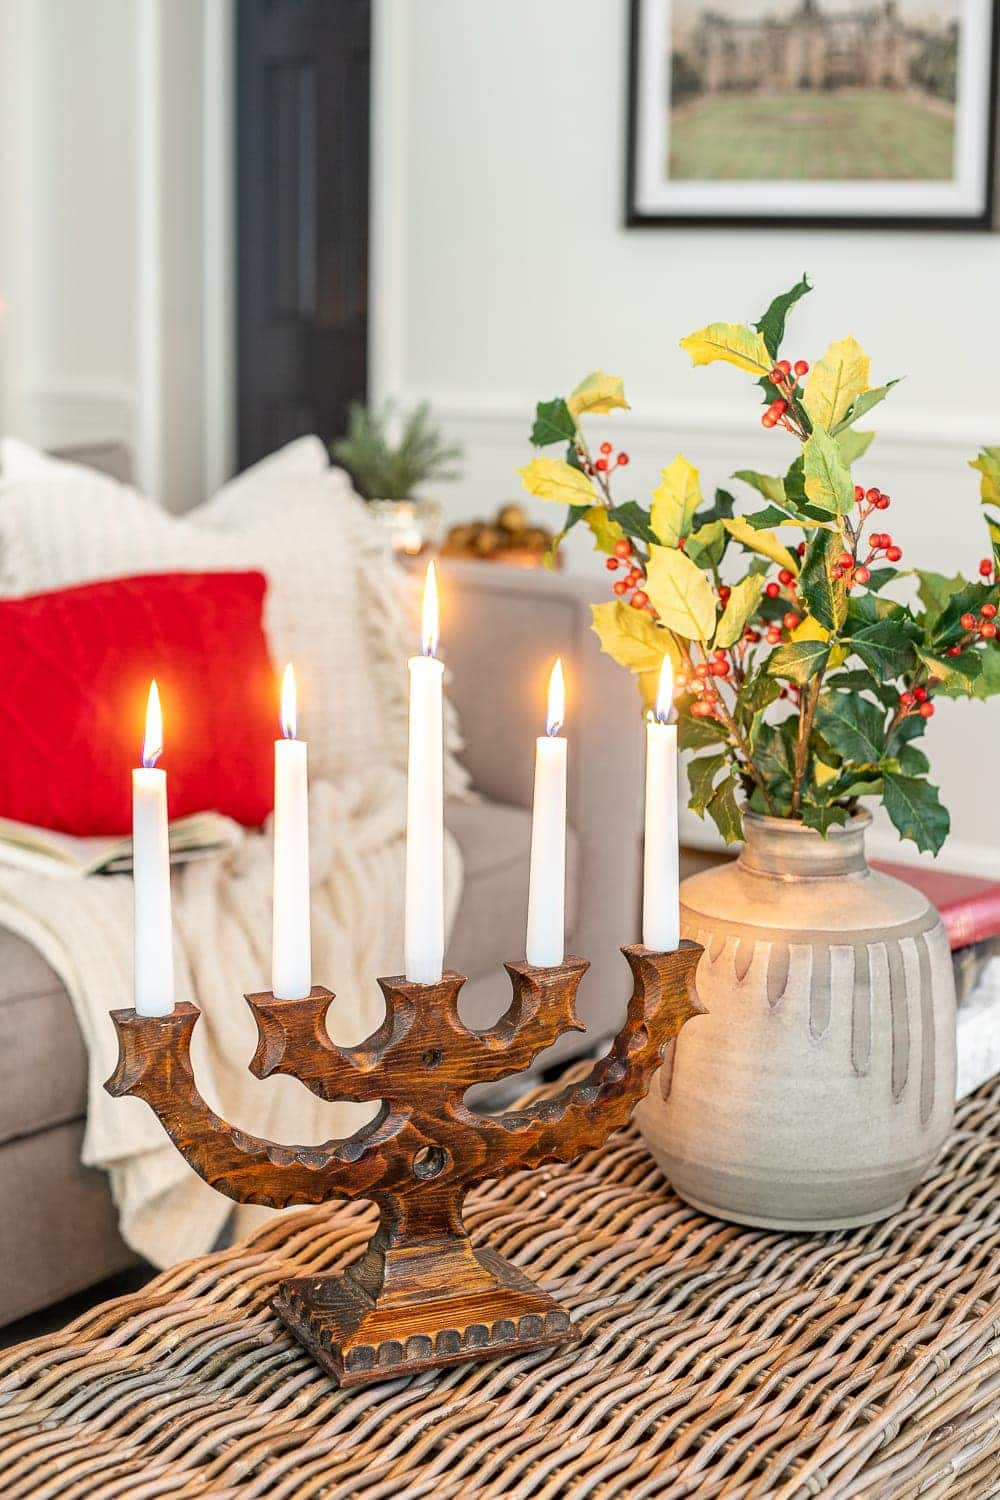 Christmas decor ideas | Scandinavian Christmas